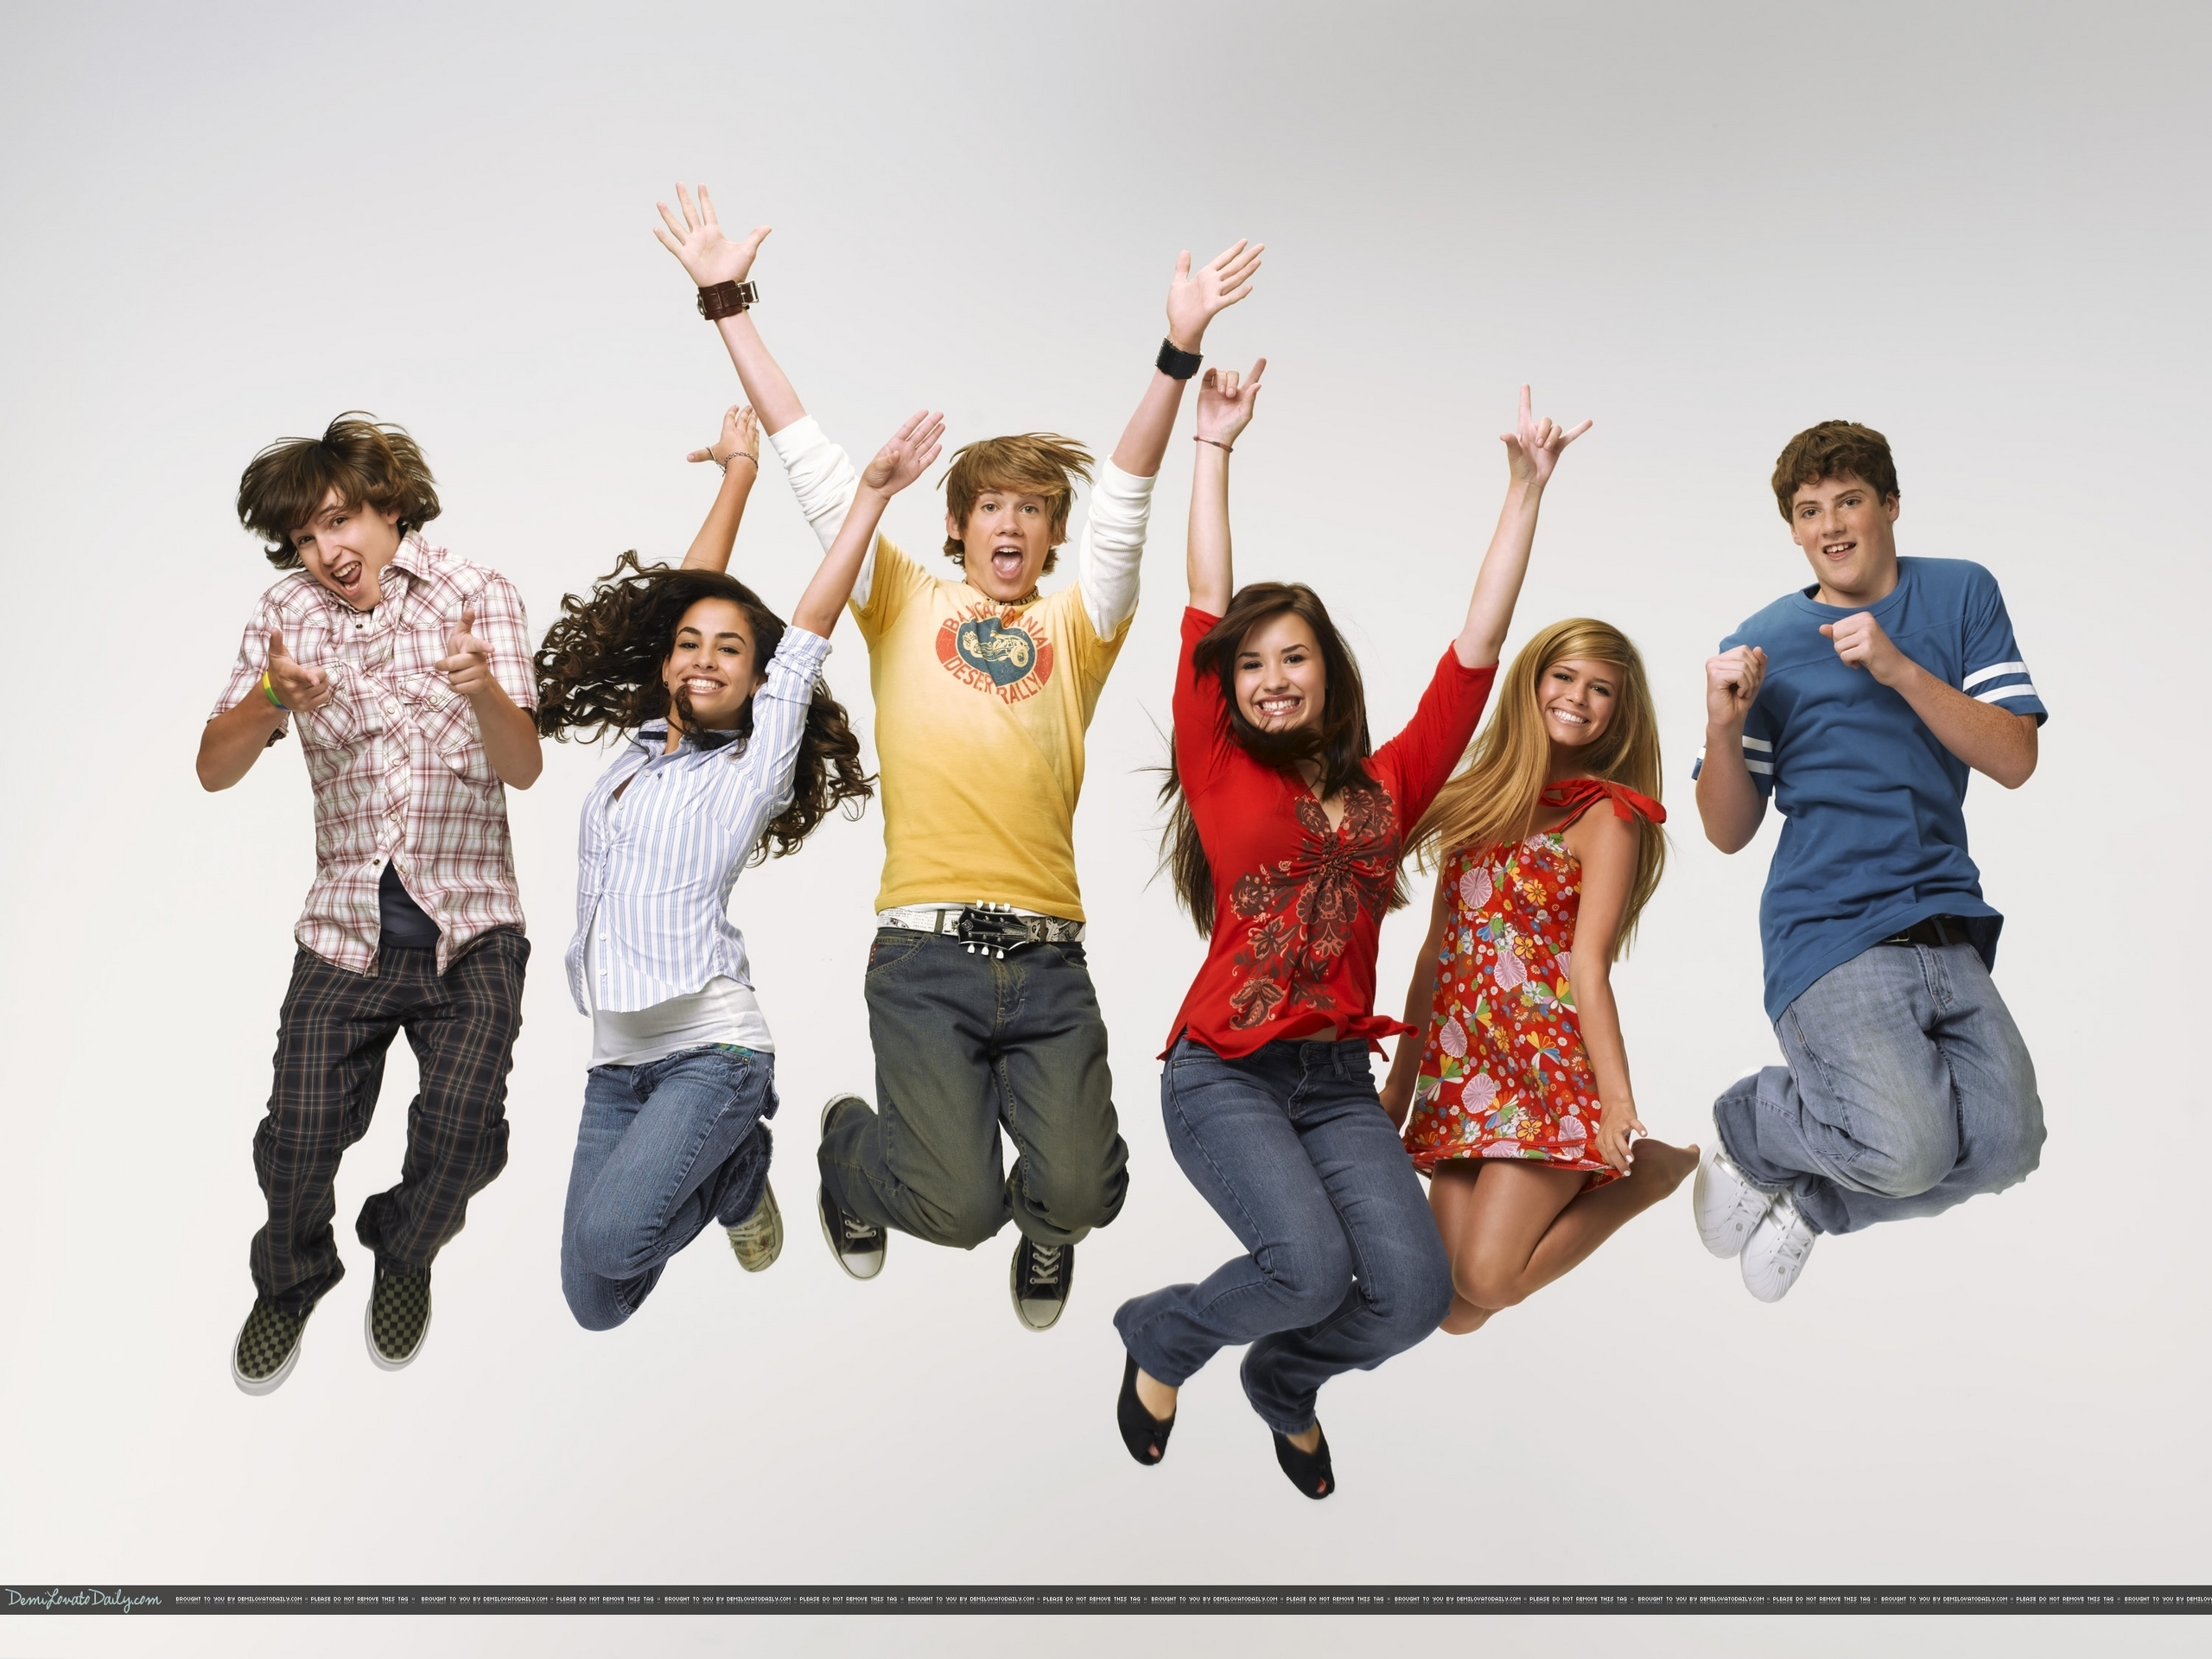 Tony Oller And Demi Lovato As The Bell Rings